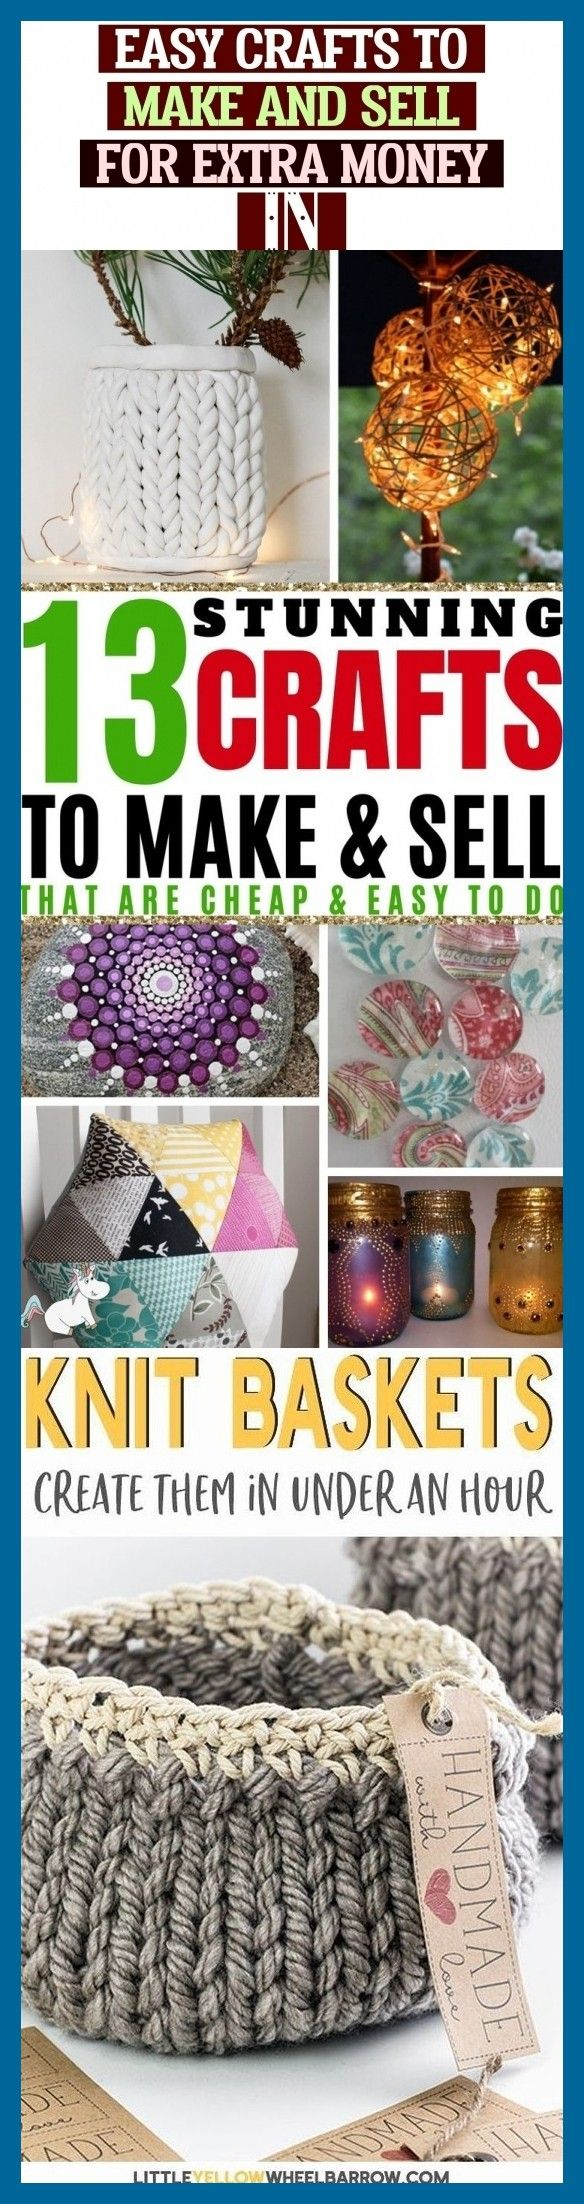 Easy Crafts To Make And Sell For Extra Money In #crochetformoney